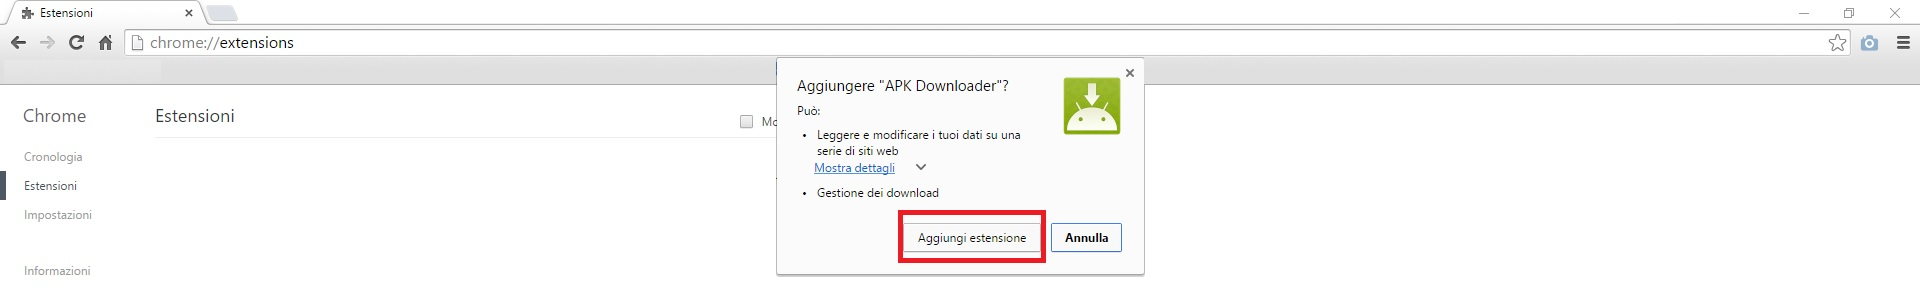 chrome_apk_downloader_install